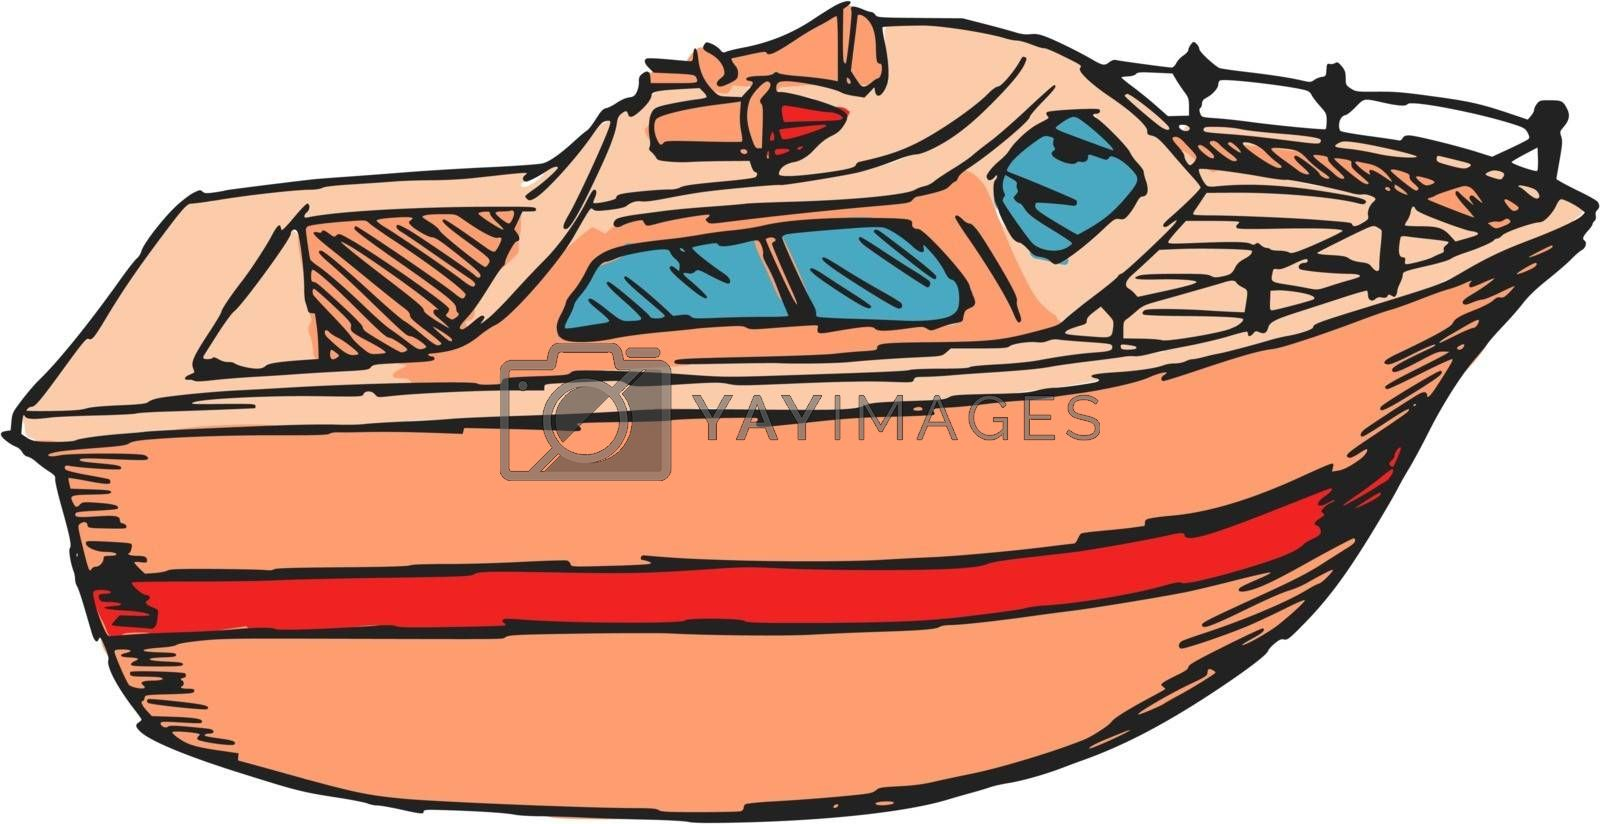 Royalty free image of Motor boat by Perysty